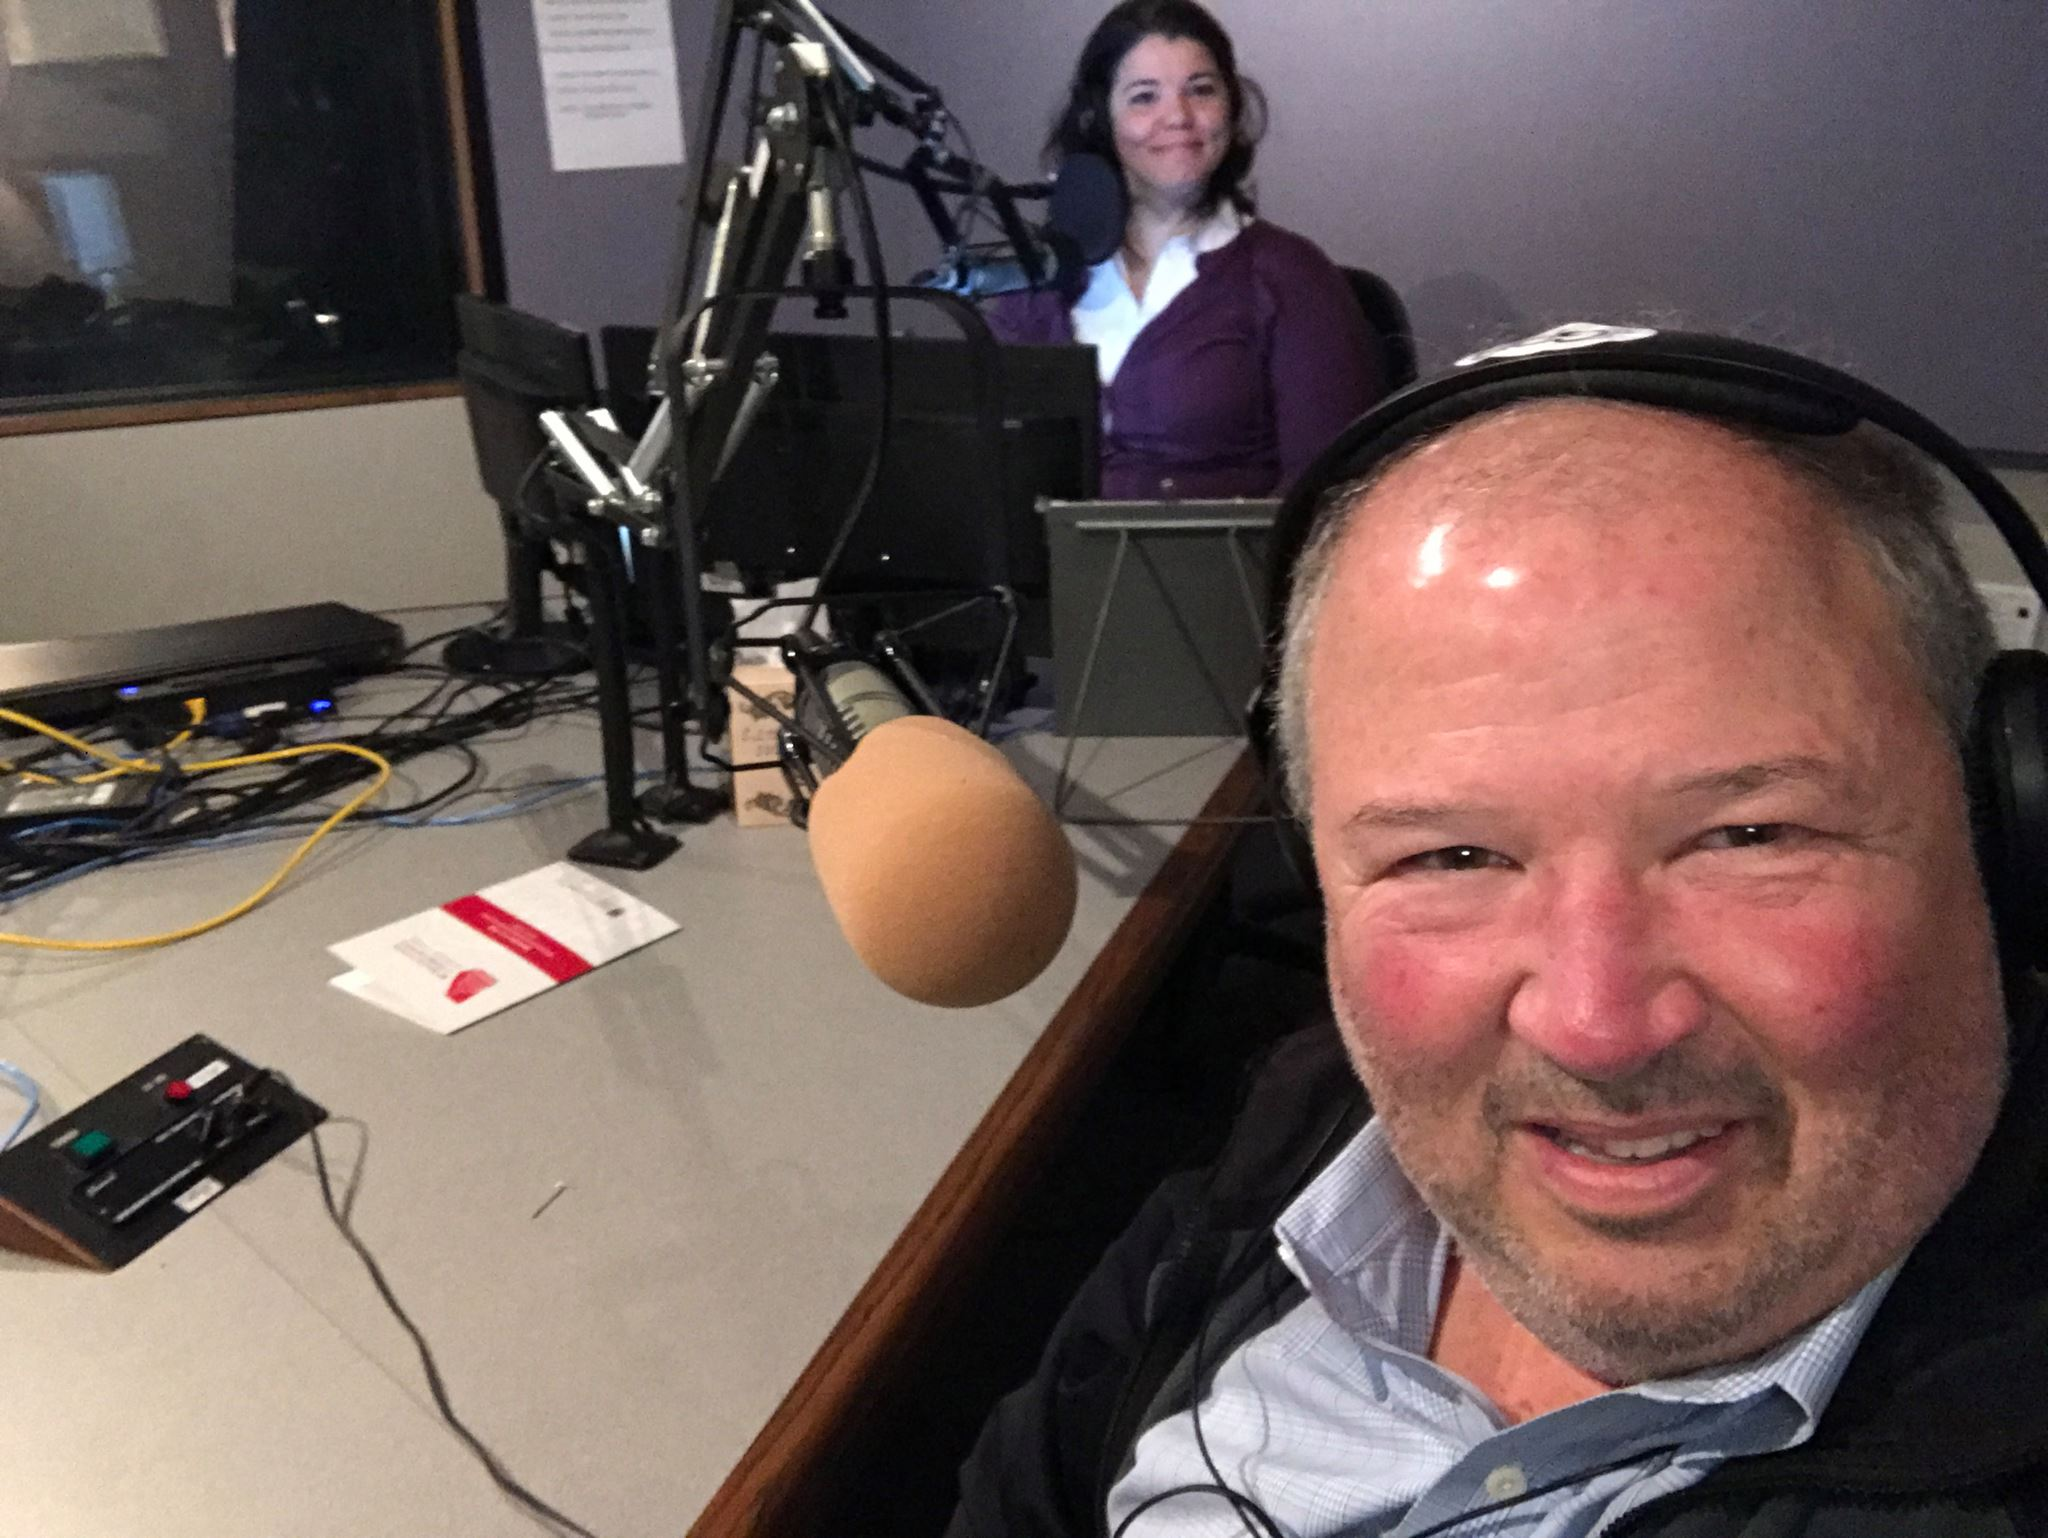 """Craig Miller gears up for his interview with host Celeste Headlee on GPB's """"On Second Thought."""""""